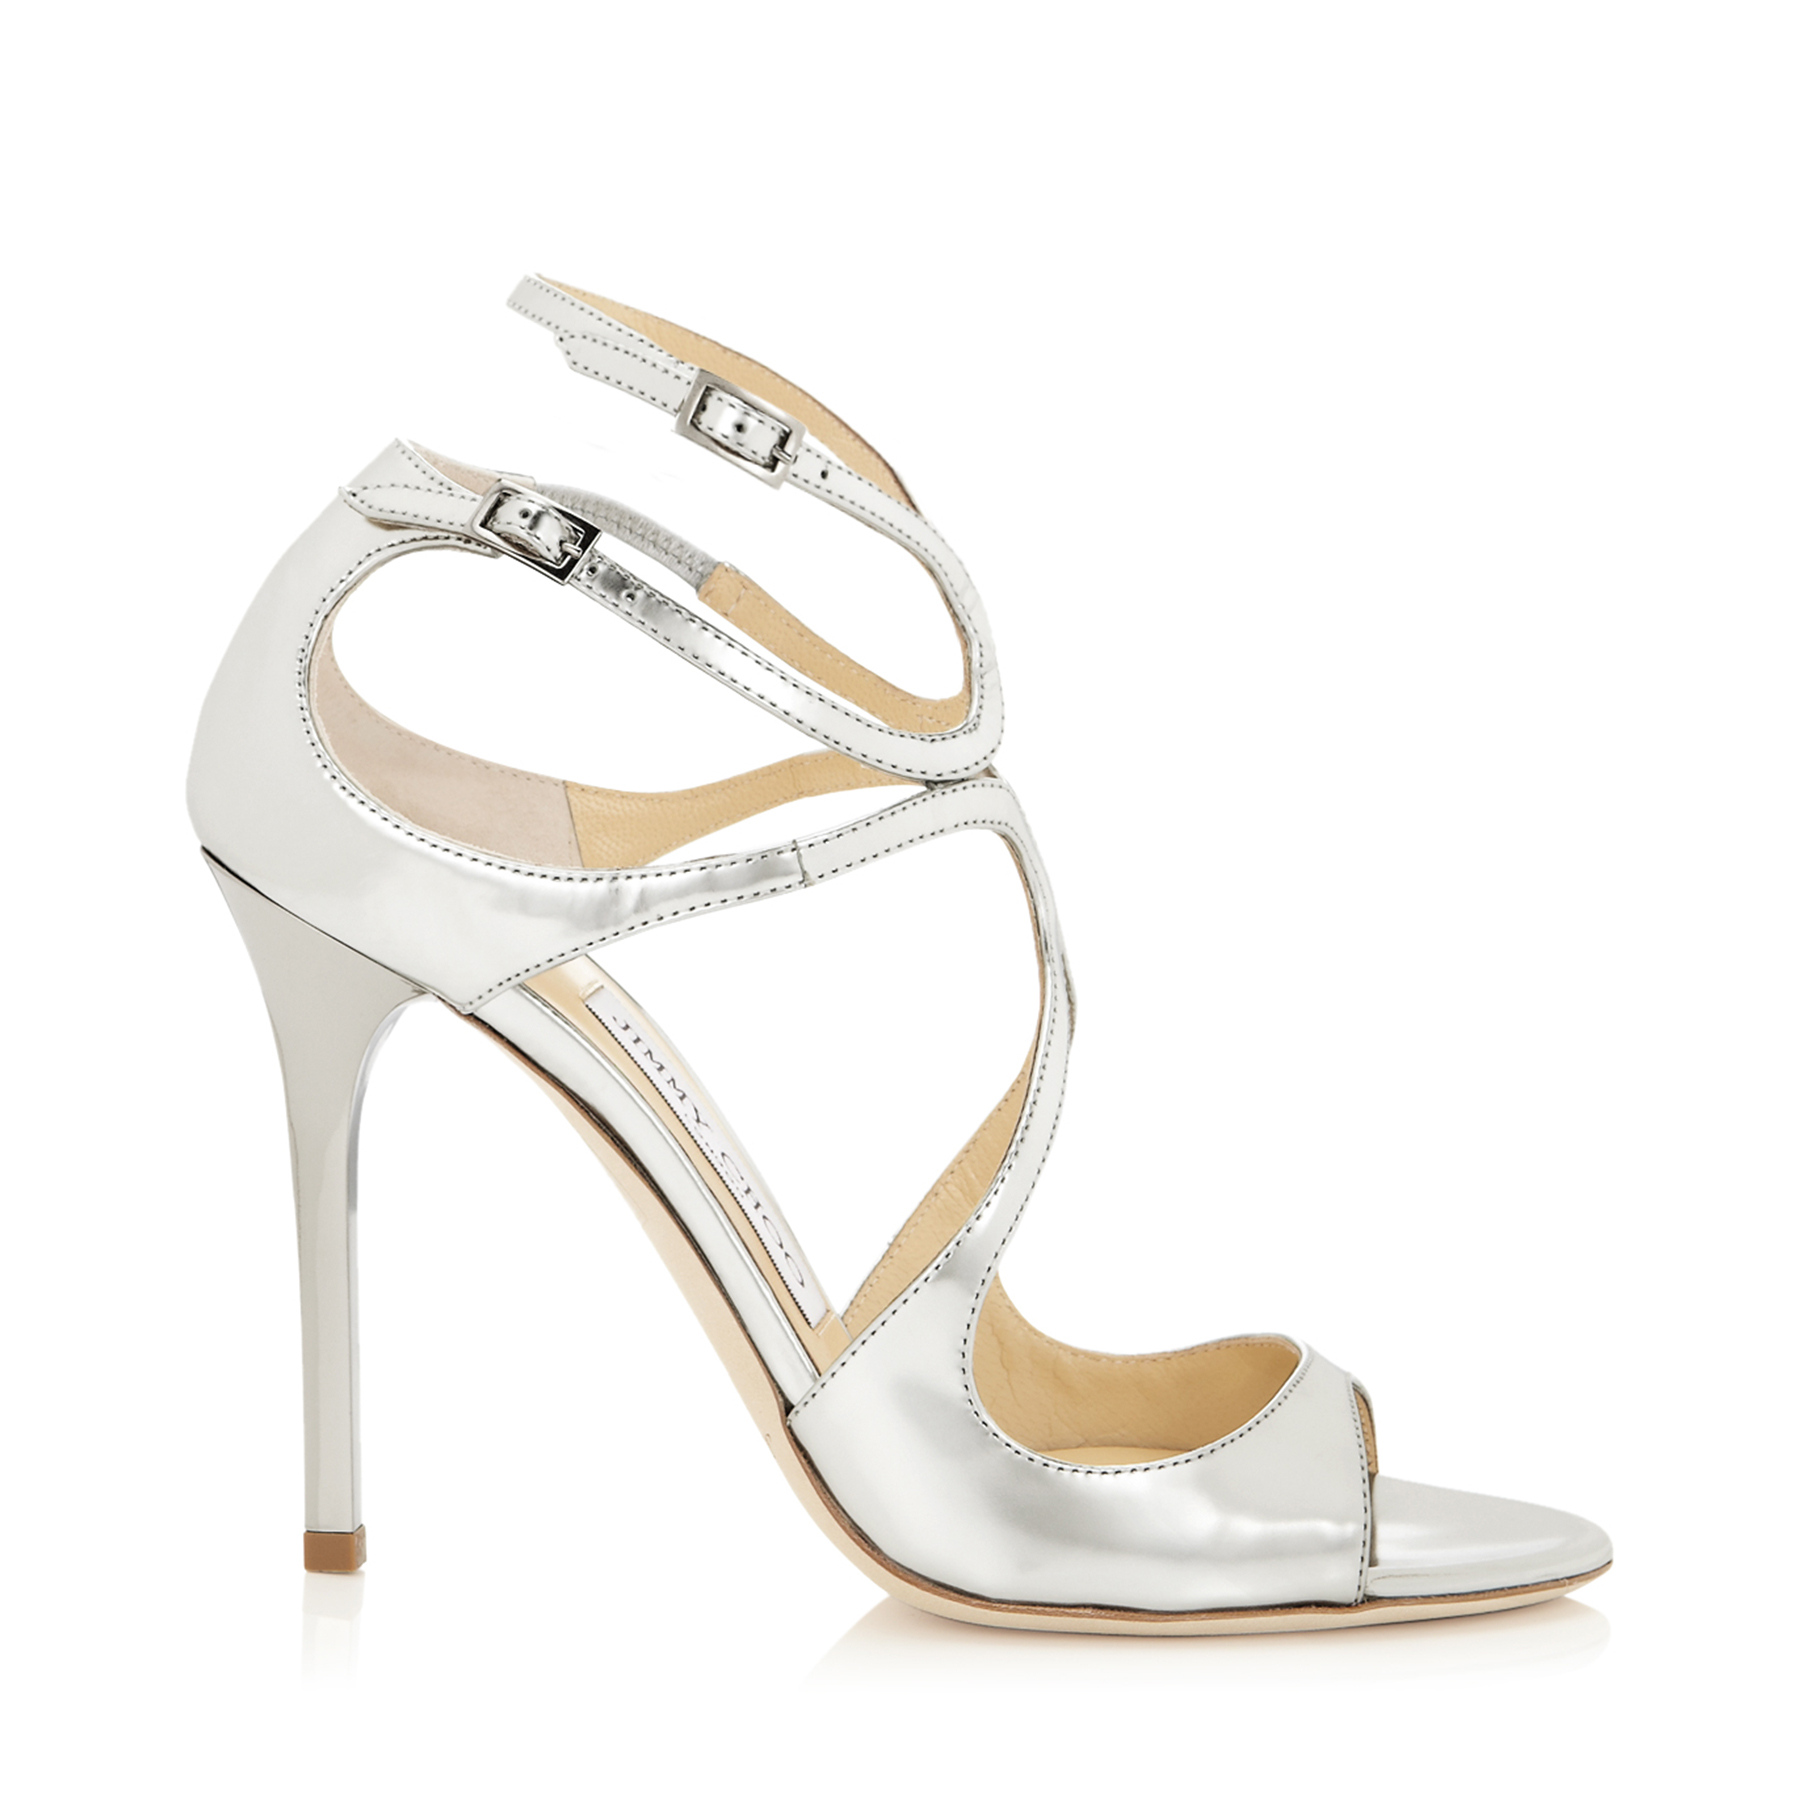 LANG Silver Mirror Leather Sandals by Jimmy Choo